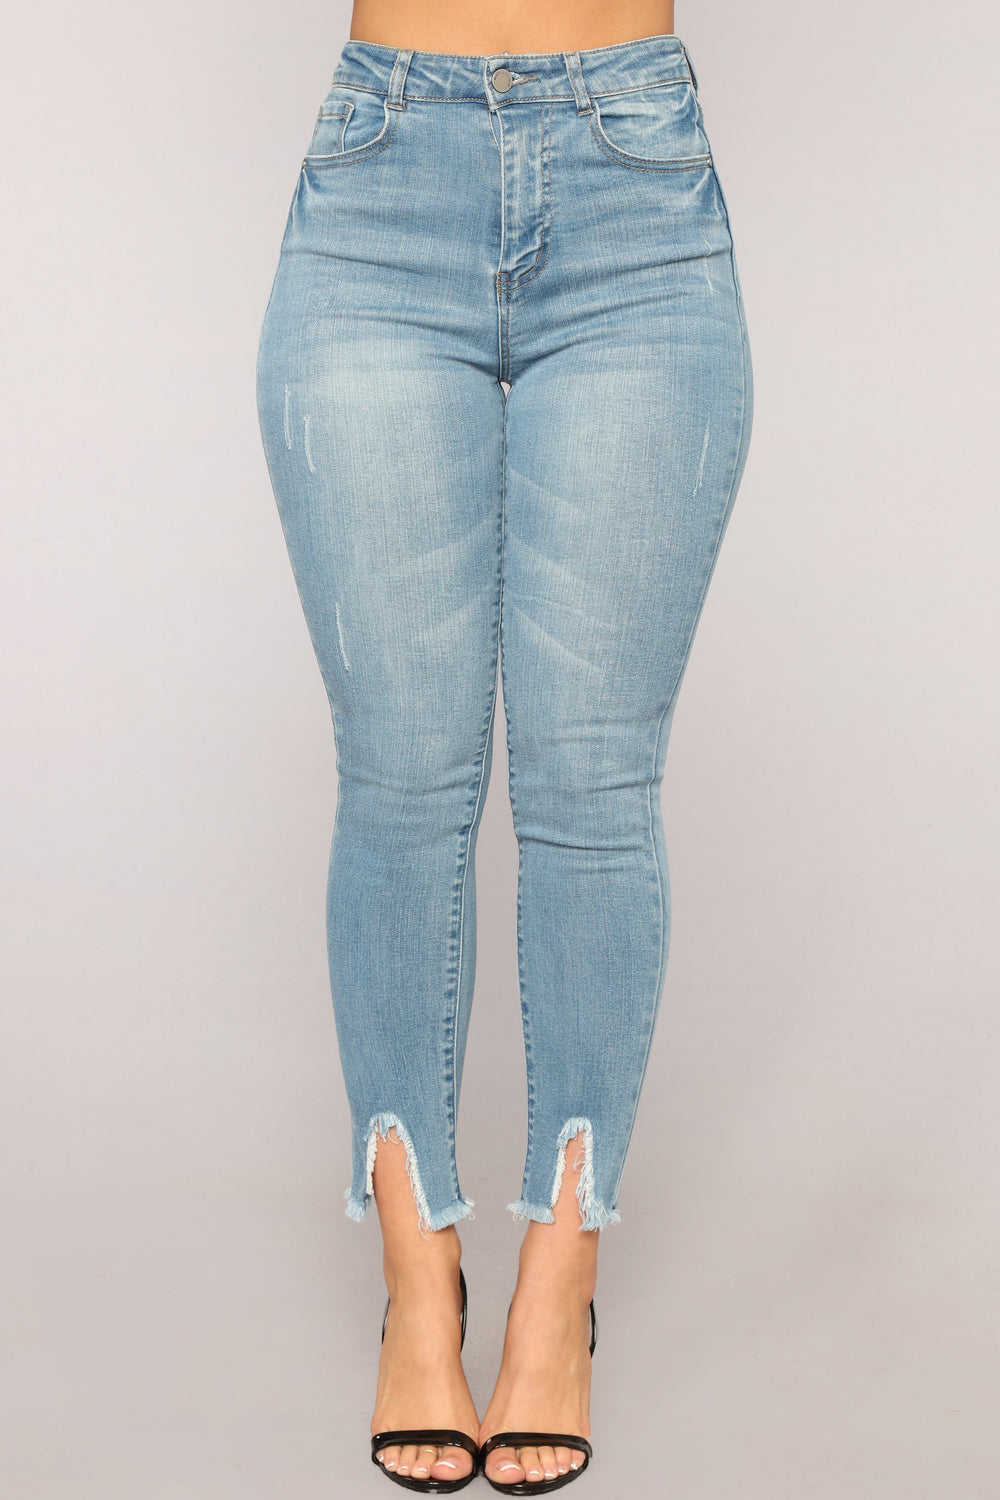 On The Loose Ankle Jeans - Light Blue Wash